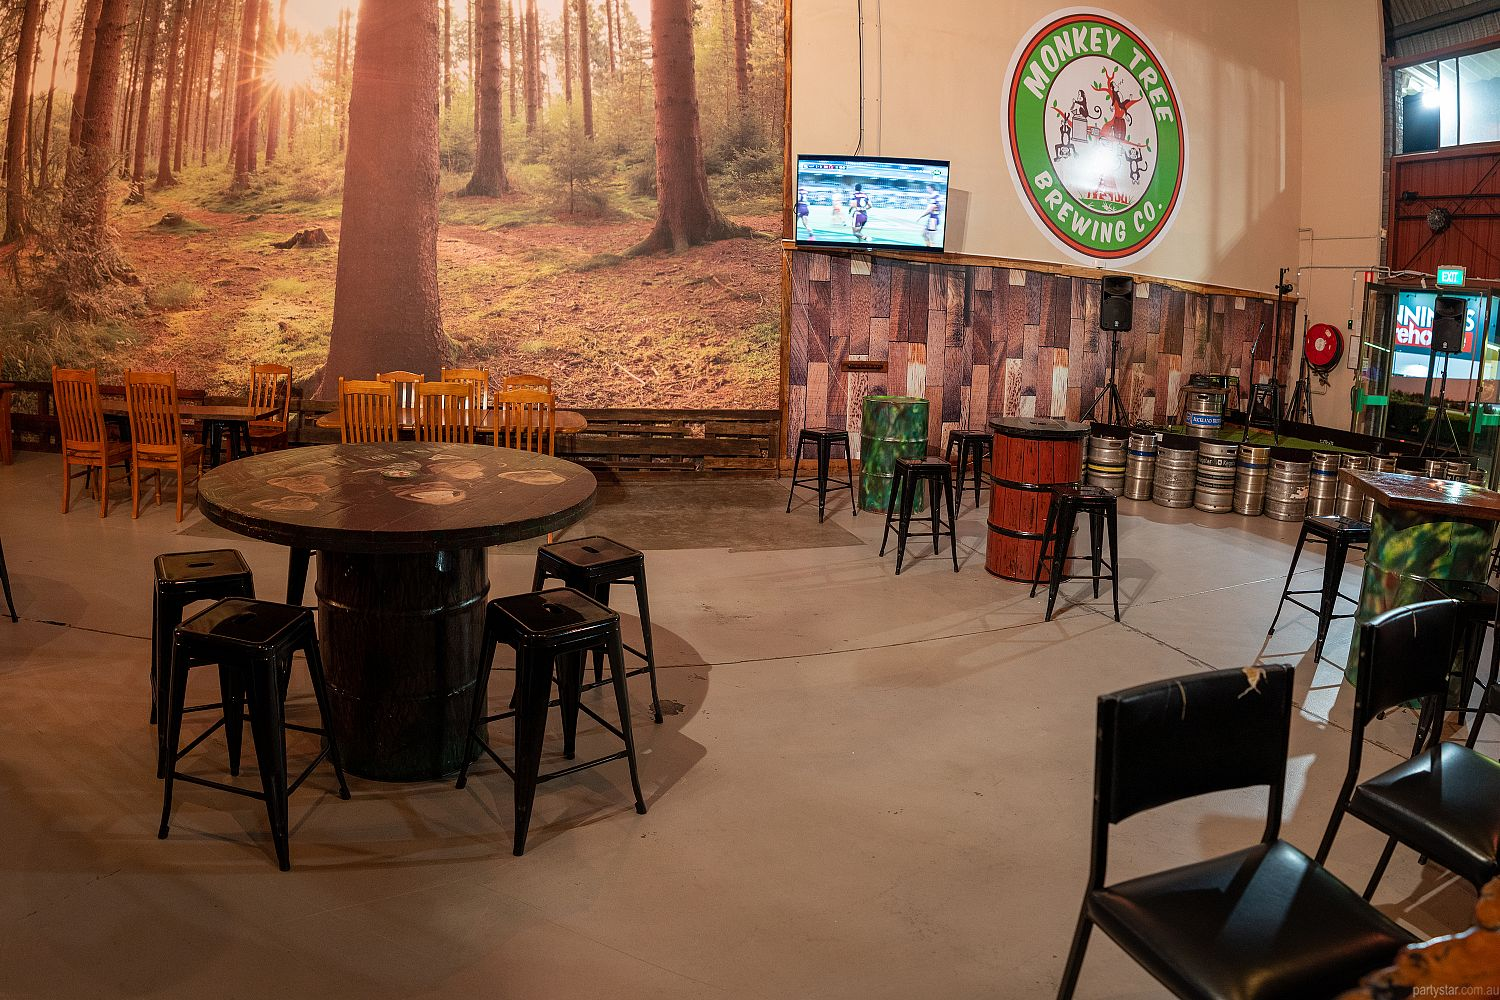 Monkey Tree Brewing Co., Underwood, QLD. Function Room hire photo #3